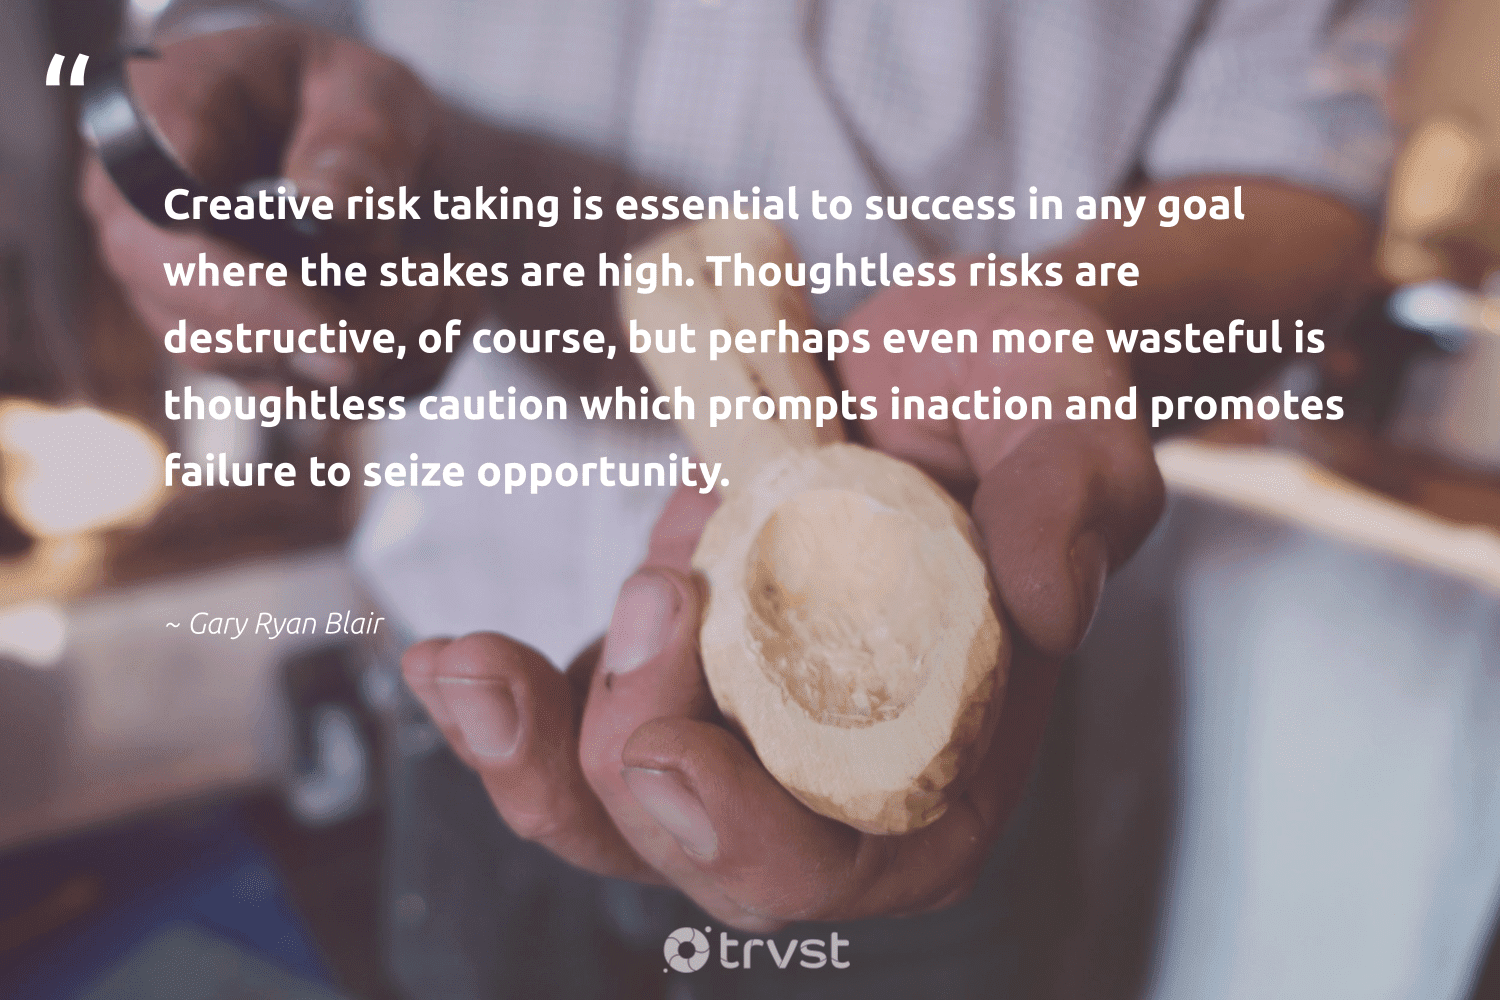 """""""Creative risk taking is essential to success in any goal where the stakes are high. Thoughtless risks are destructive, of course, but perhaps even more wasteful is thoughtless caution which prompts inaction and promotes failure to seize opportunity.""""  - Gary Ryan Blair #trvst #quotes #productivity #success #creative #mostwontiwill #begreat #futureofwork #bethechange #timemanagement #softskills #nevergiveup"""